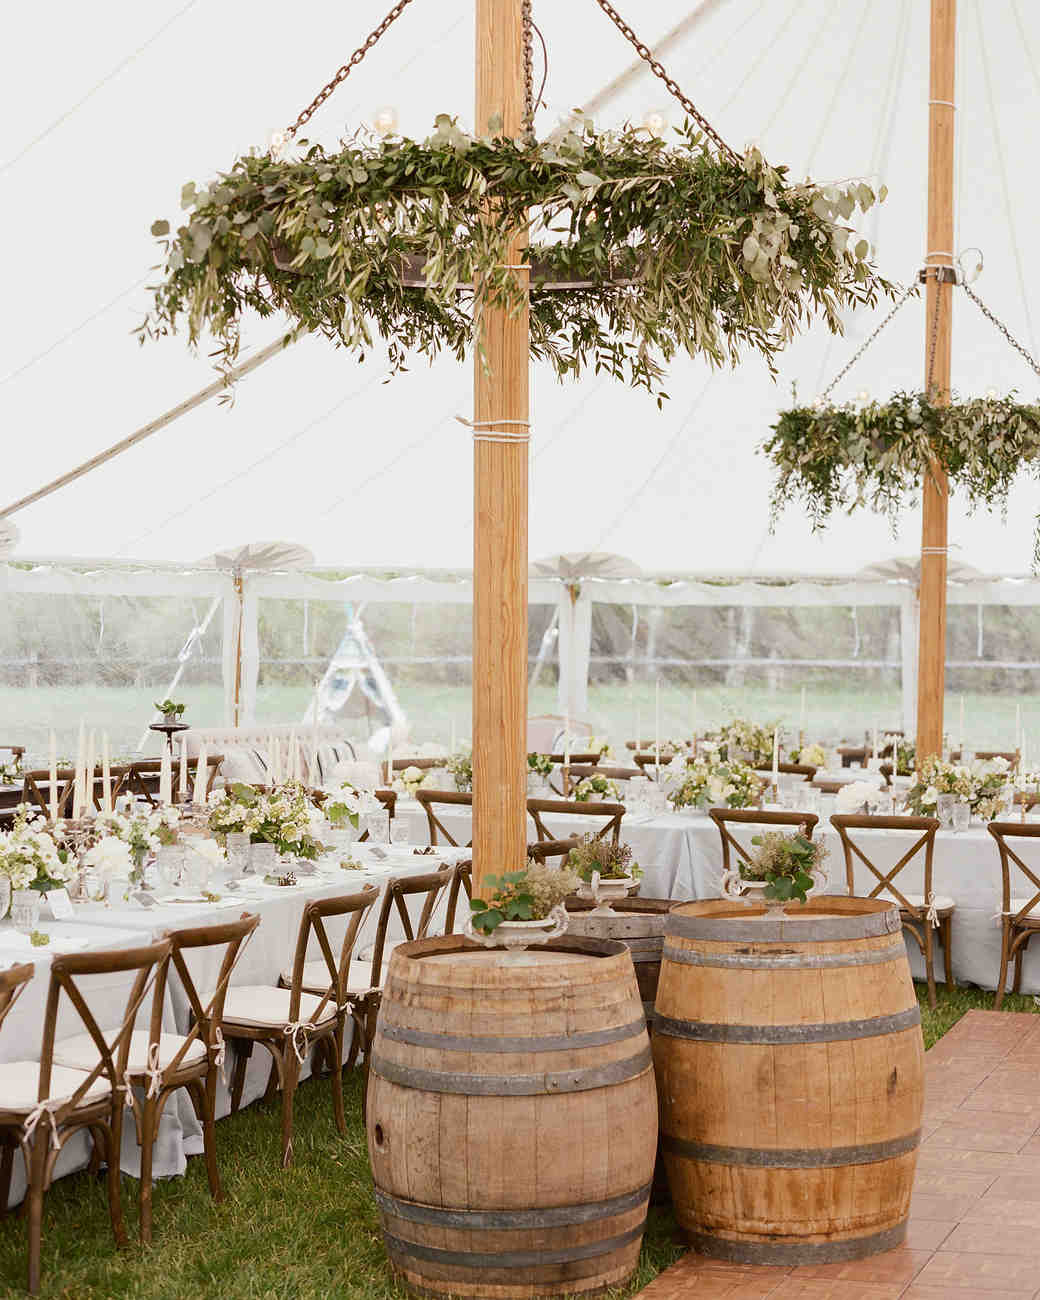 rustic tented weddding reception decoration ideas